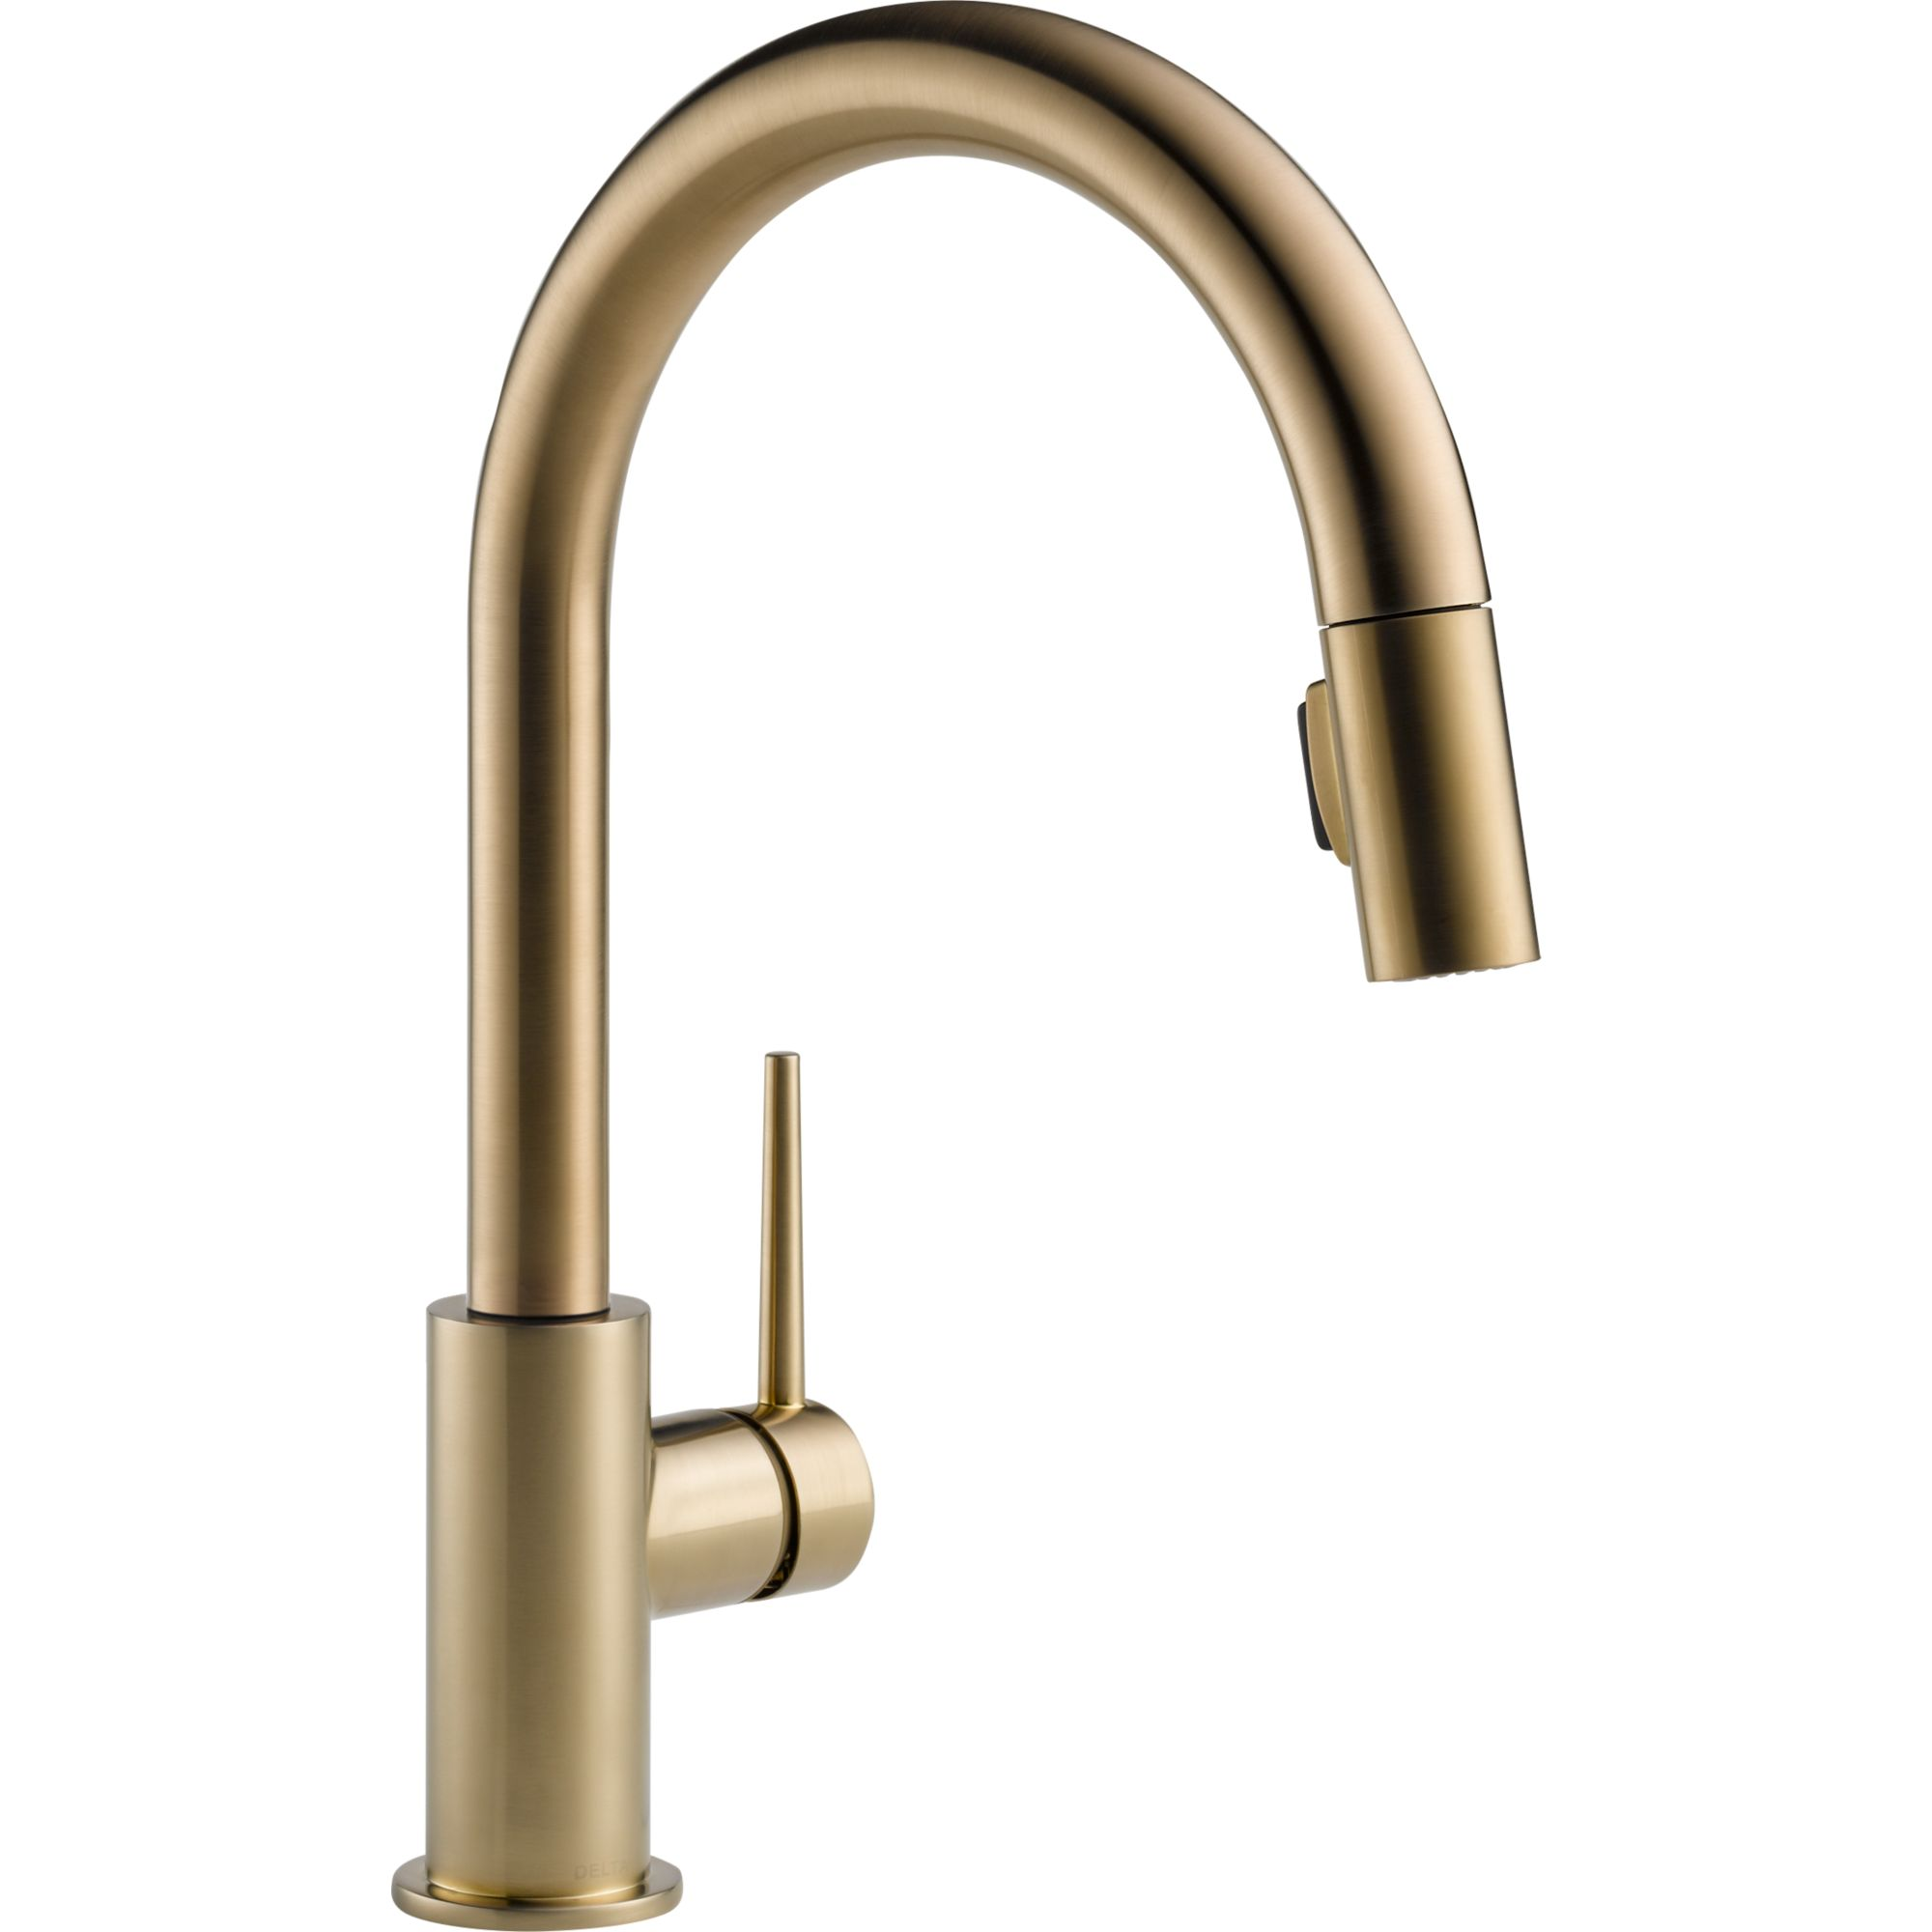 champagne kitchen faucet designs most best faucets bronze size original in image of